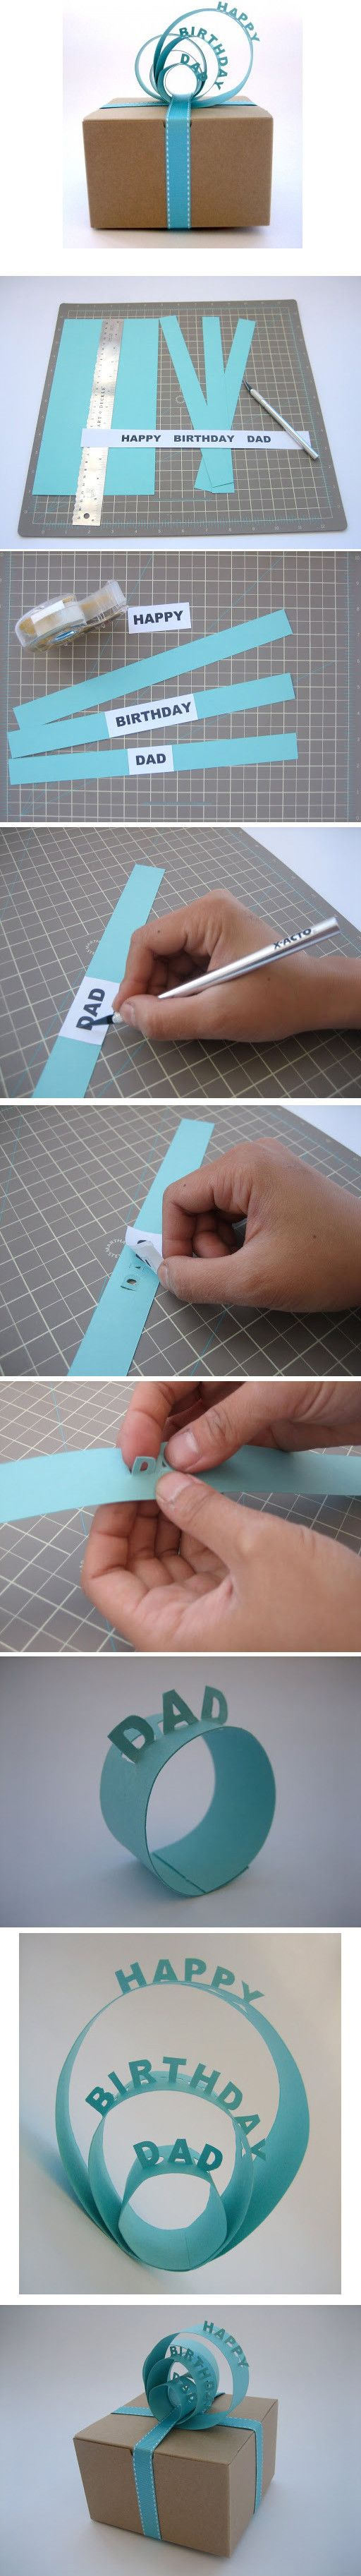 Create a pop-up message ribbon made of strips of paper. Check out below for instructions.